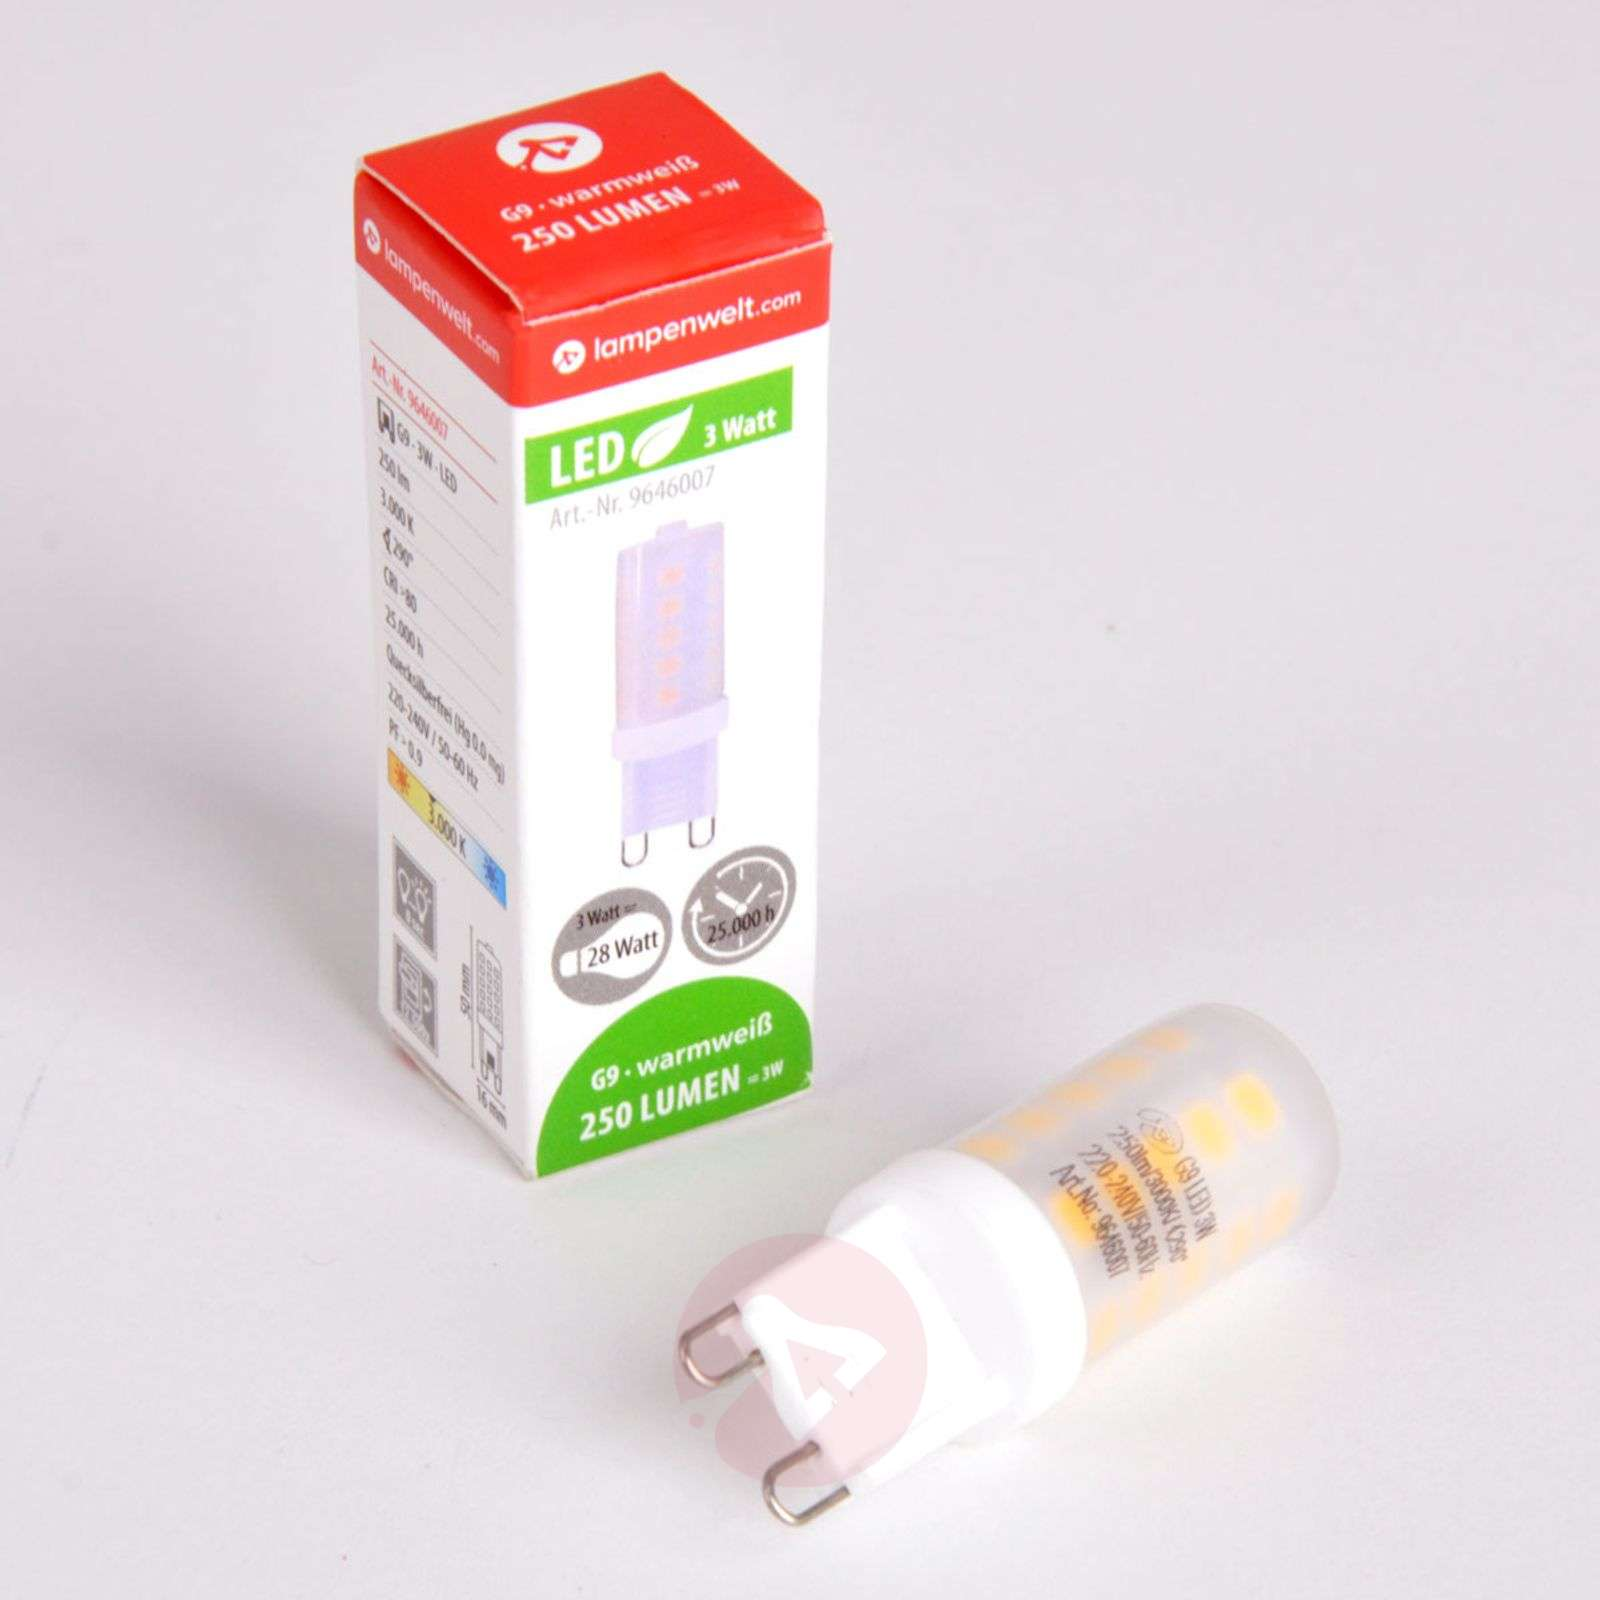 Ampoule à broches LED G9 de 3 W 830-9646007-06